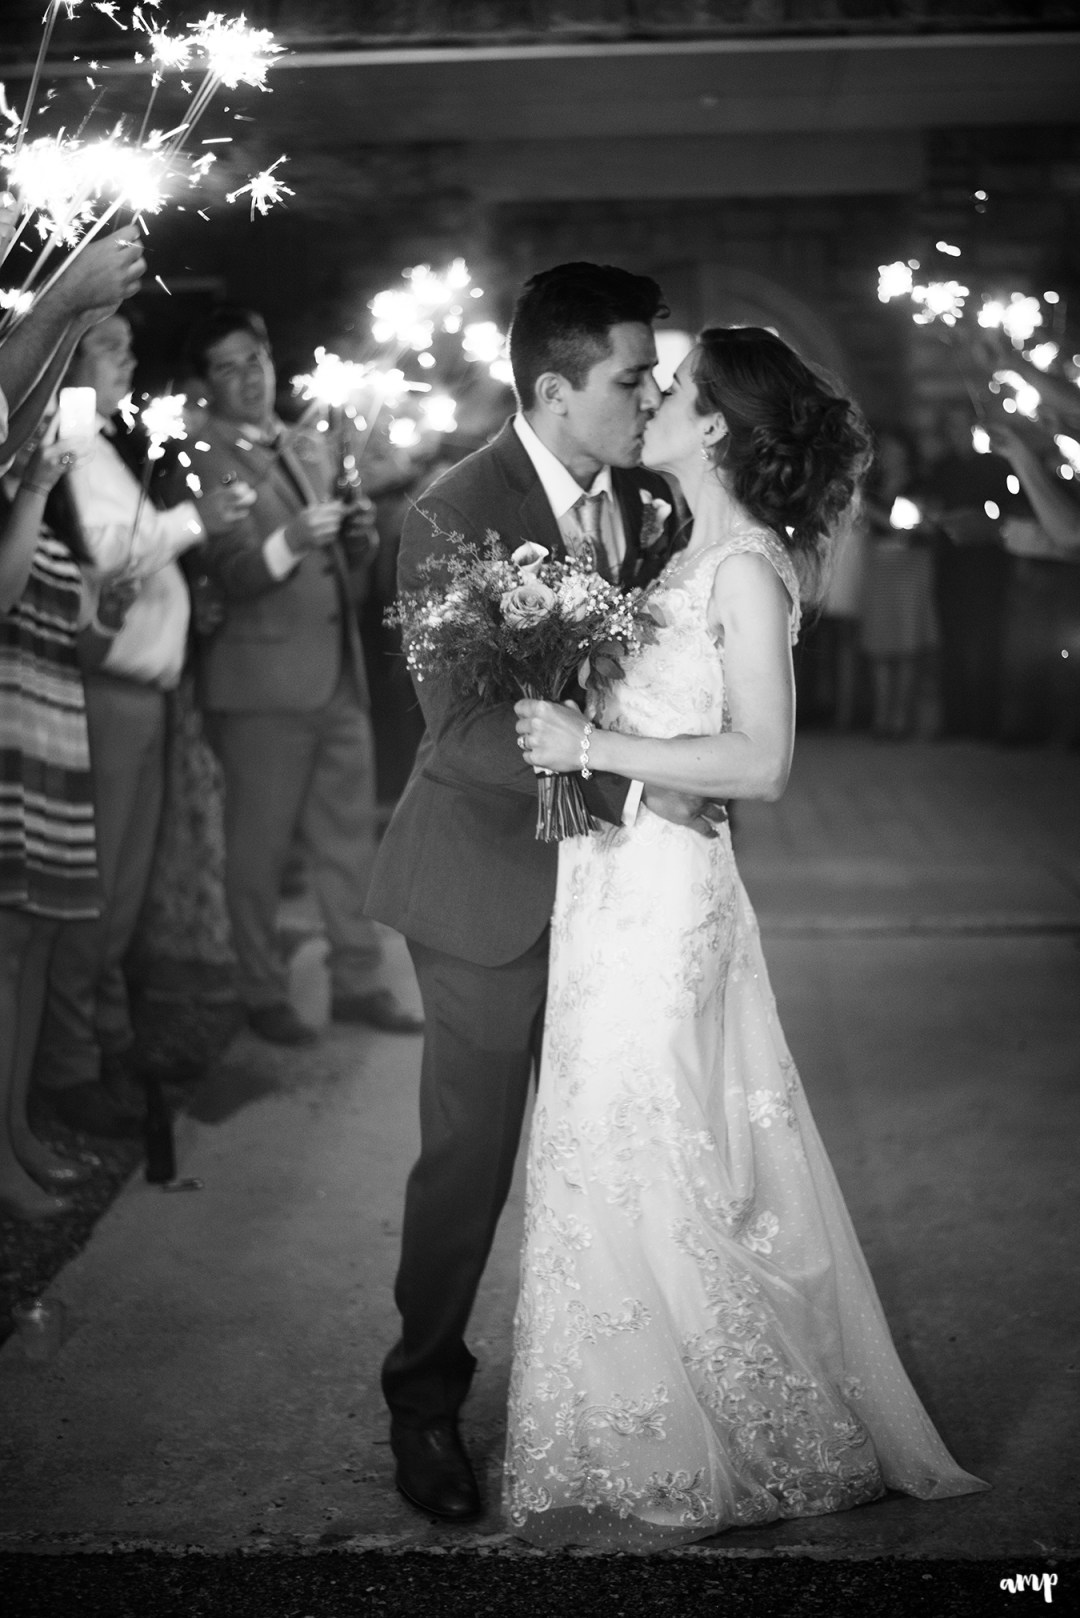 Bride and groom share a kiss during their sparkler exit